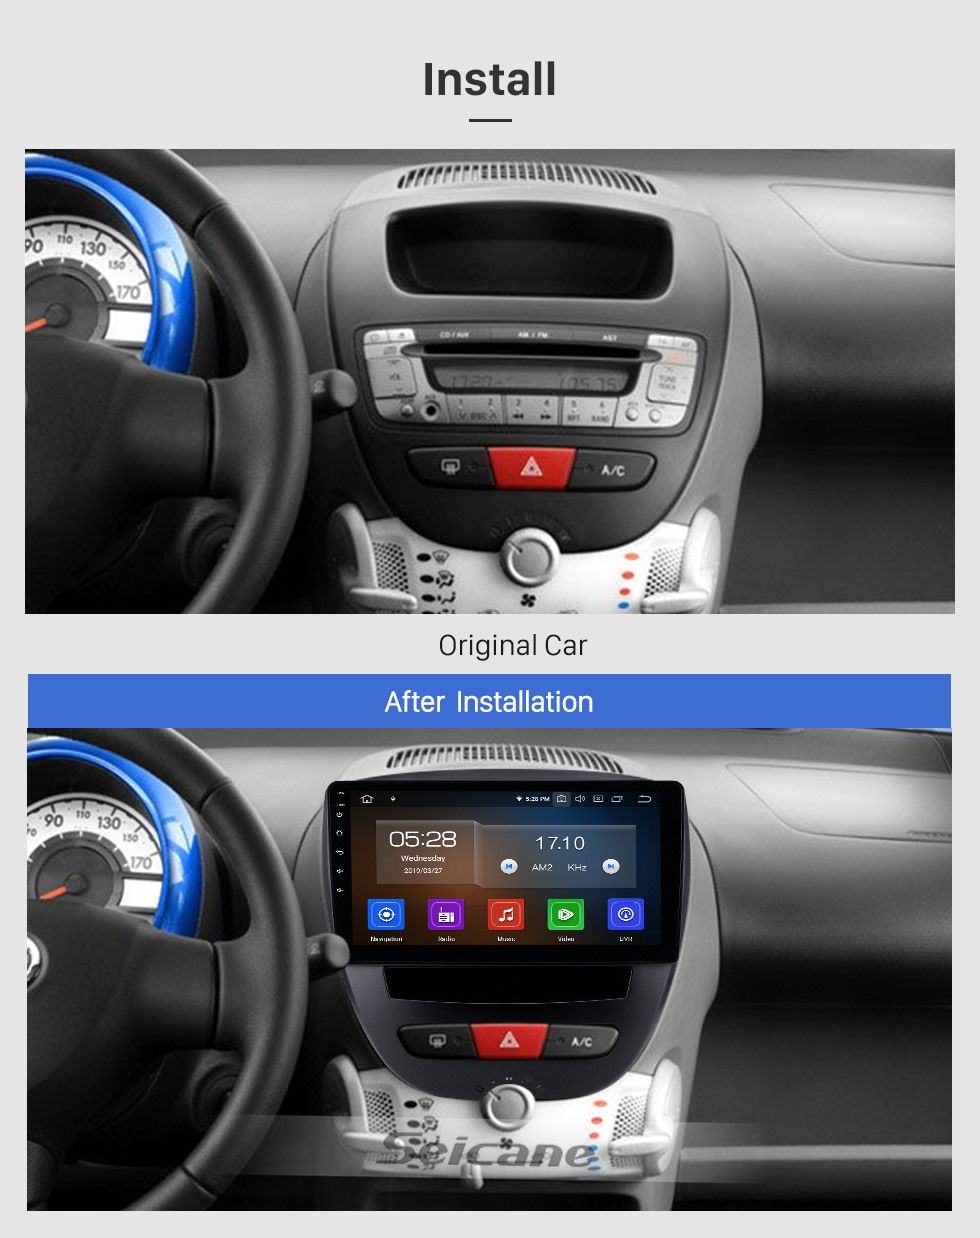 Seicane 10.1 pulgadas 2005-2014 Peugeot 107 Android 10.0 Navegación GPS Radio Bluetooth HD Pantalla táctil AUX Carplay Música compatible 1080P Video TV digital Cámara trasera